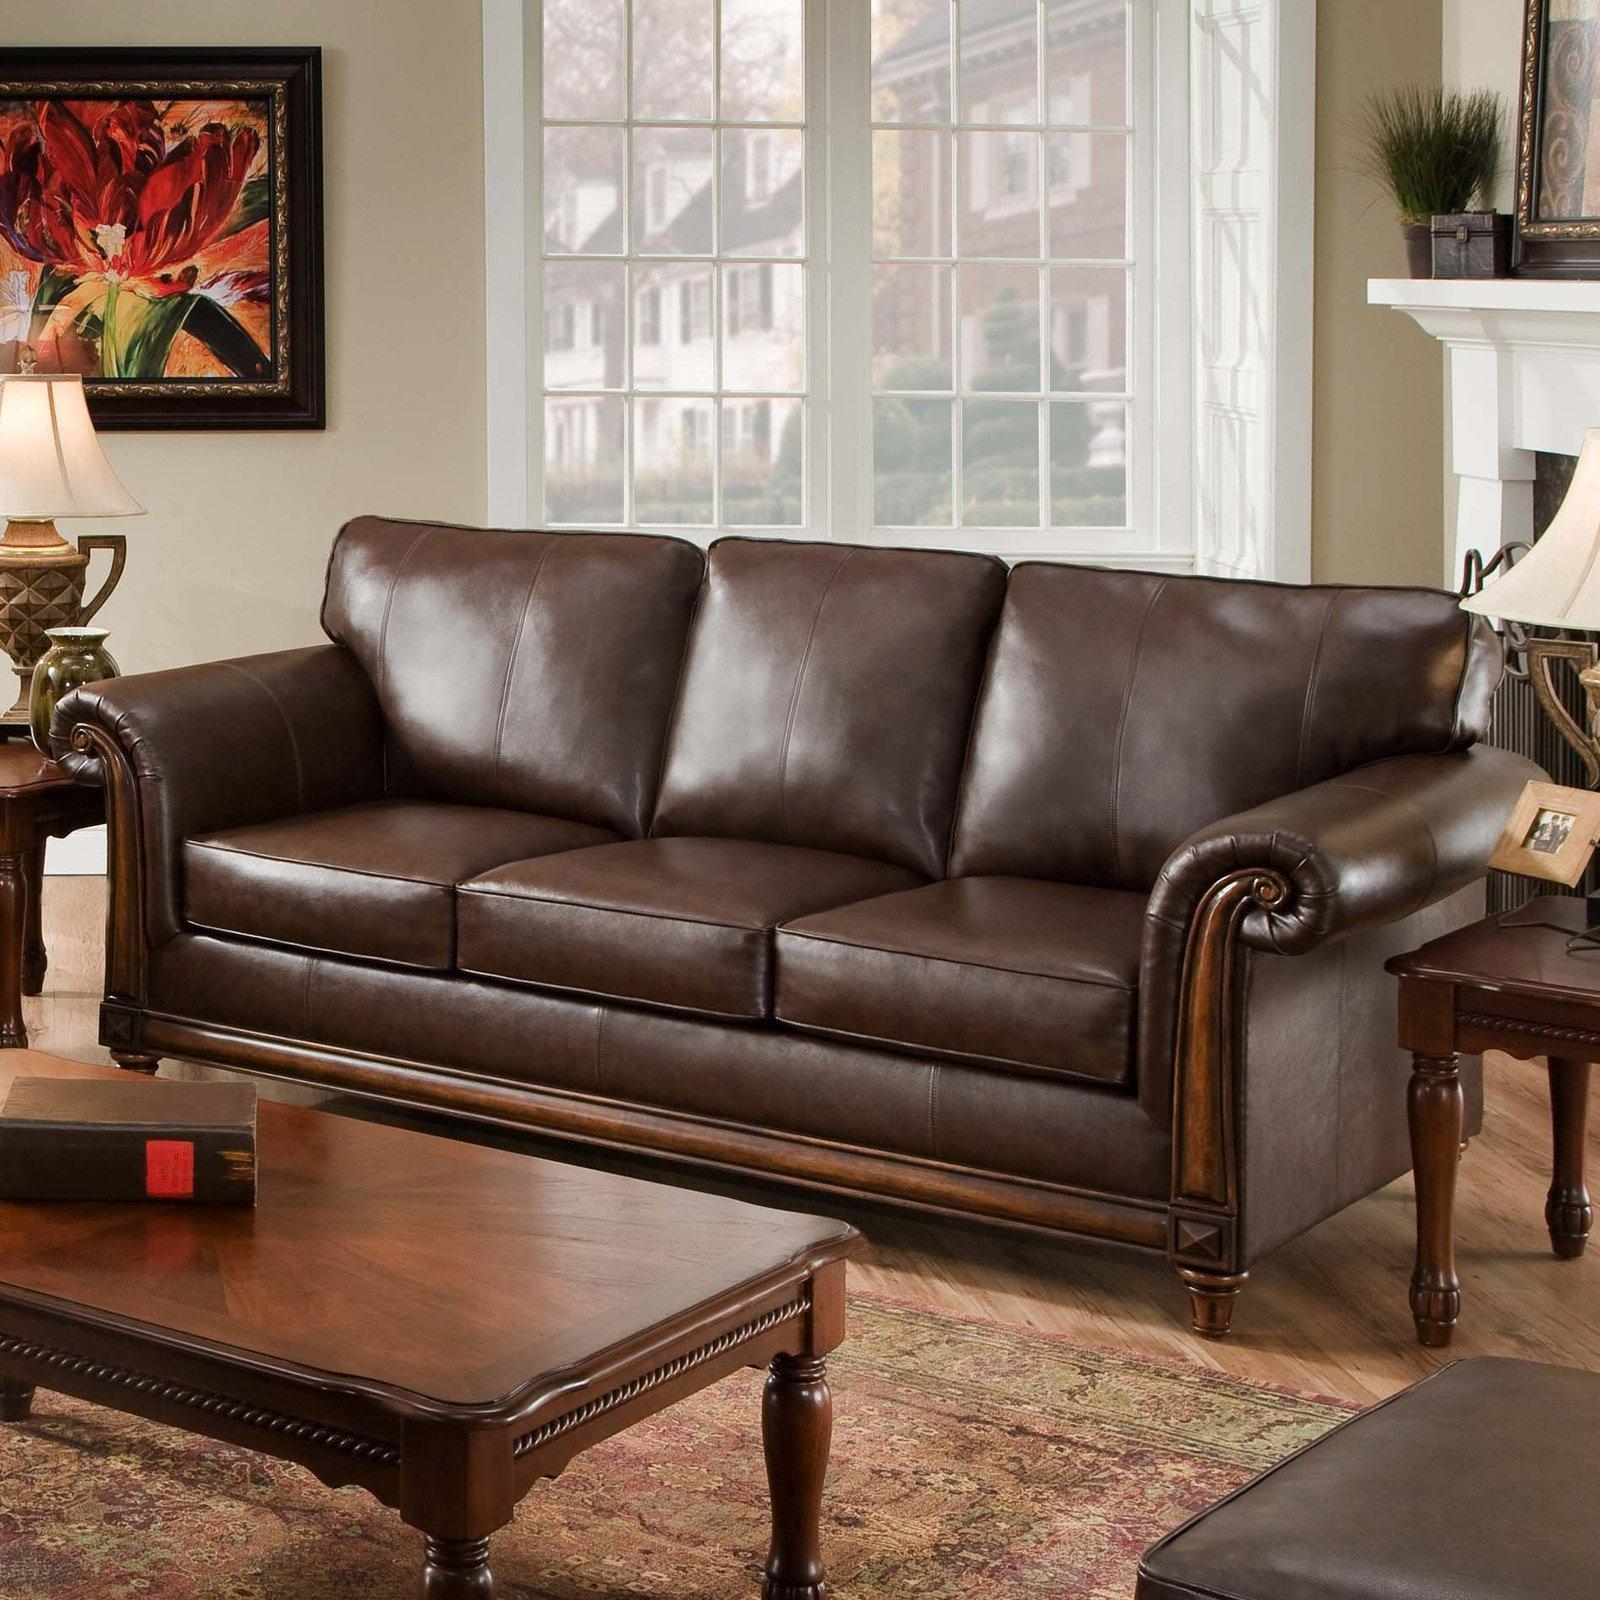 Simmons San Diego Coffee Leather Sofa | Hayneedle Within Leather Sectional San Diego (Image 11 of 20)